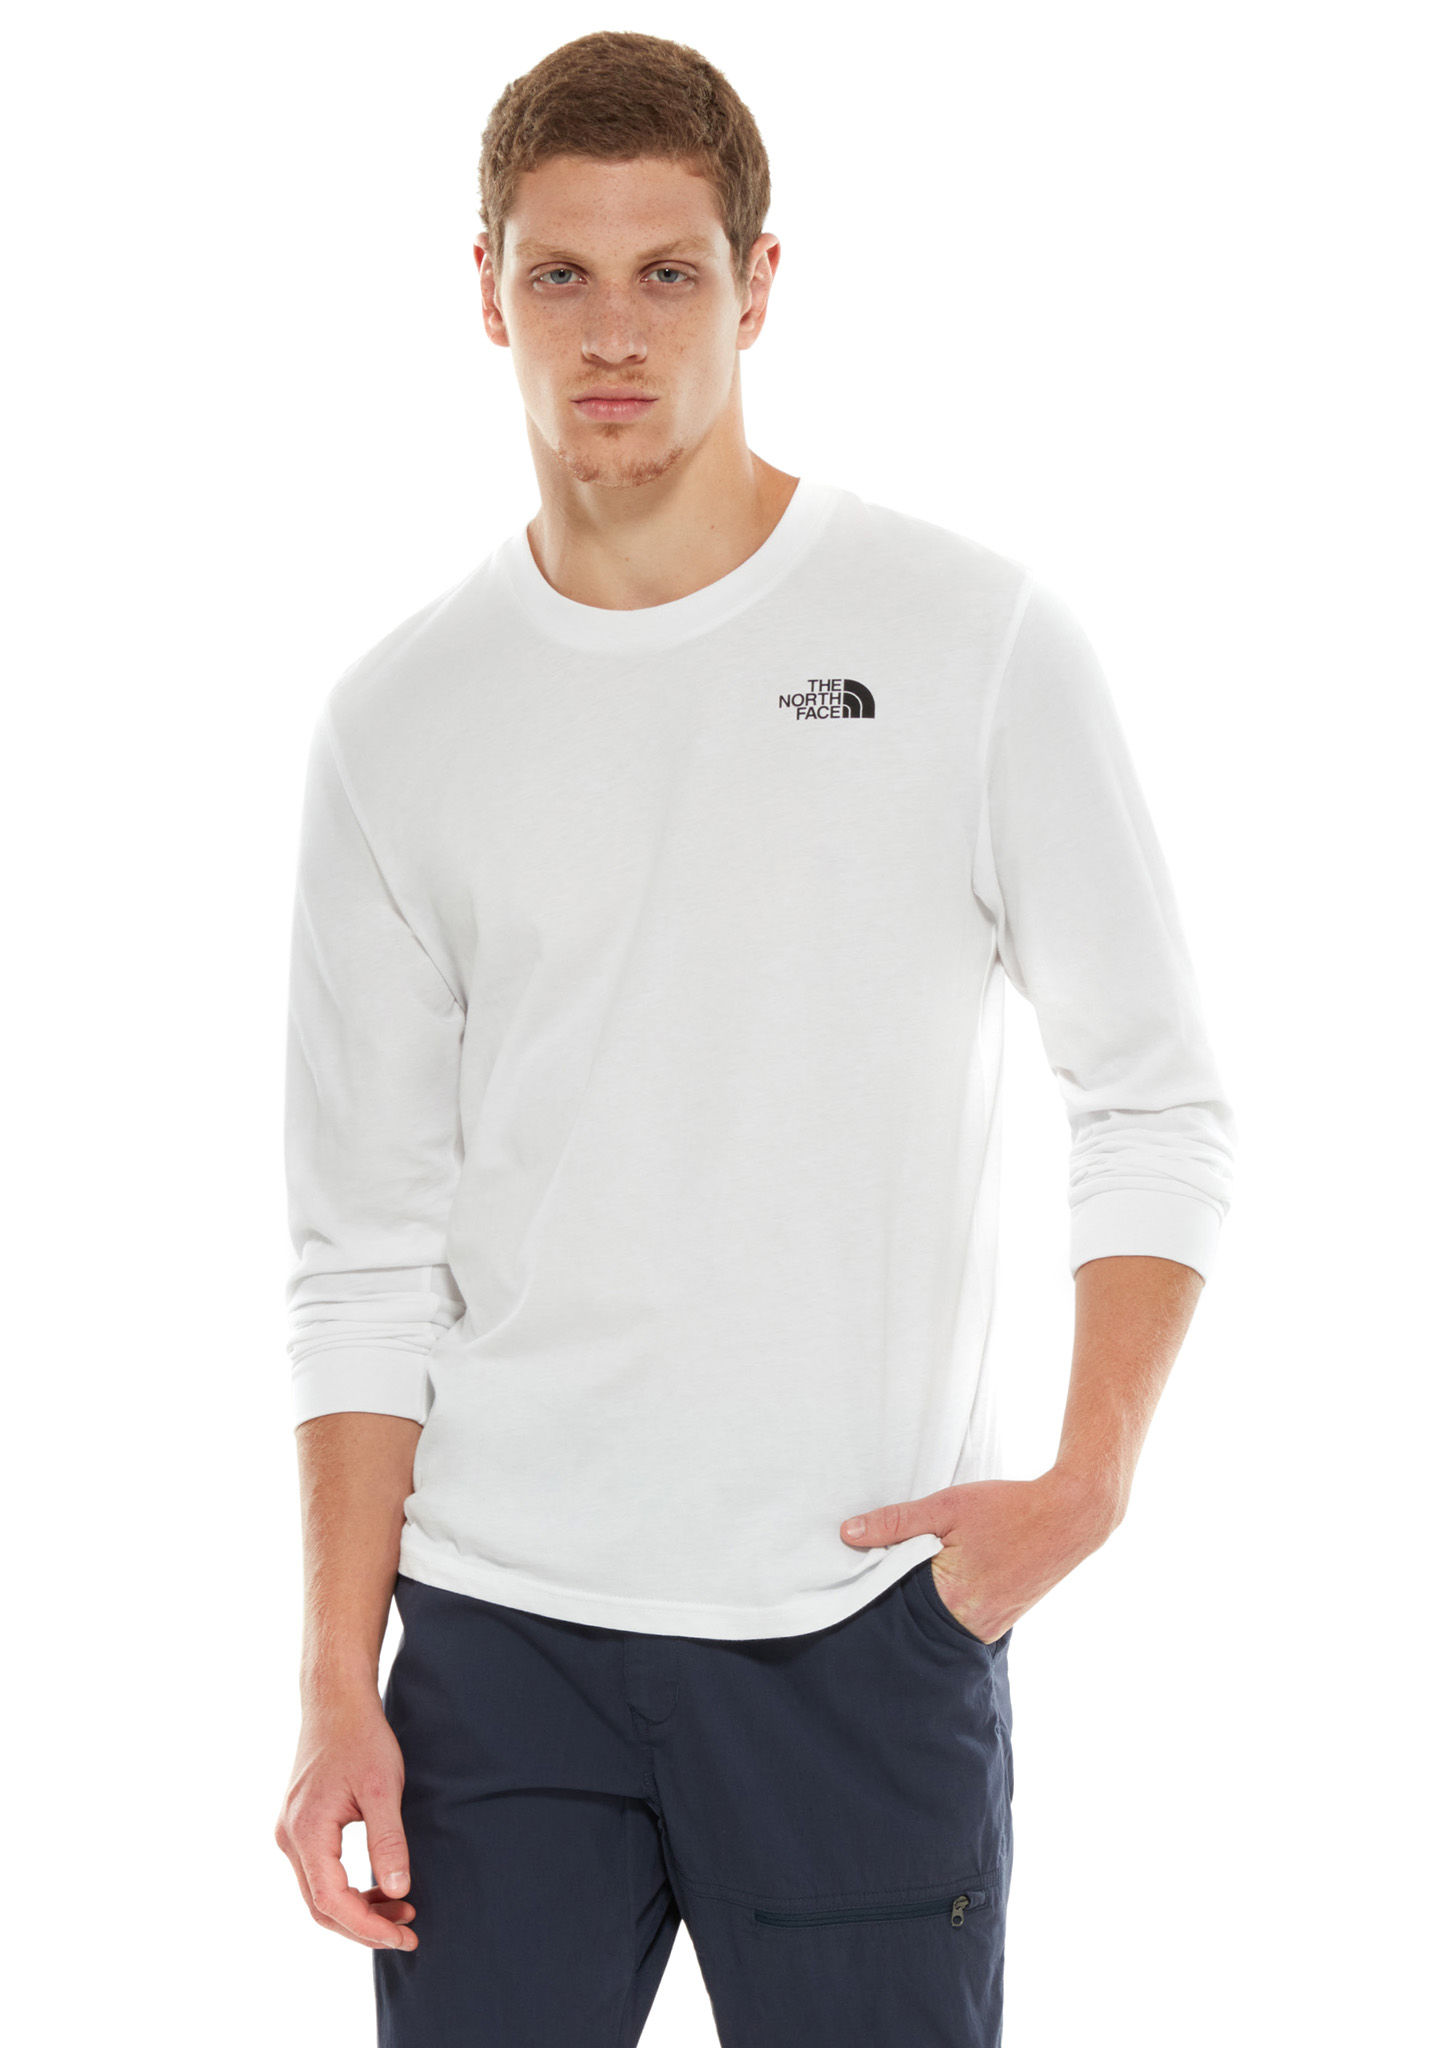 0d2d48c6 THE NORTH FACE Simple Dome - Long-sleeved Shirt for Men - White - Planet  Sports